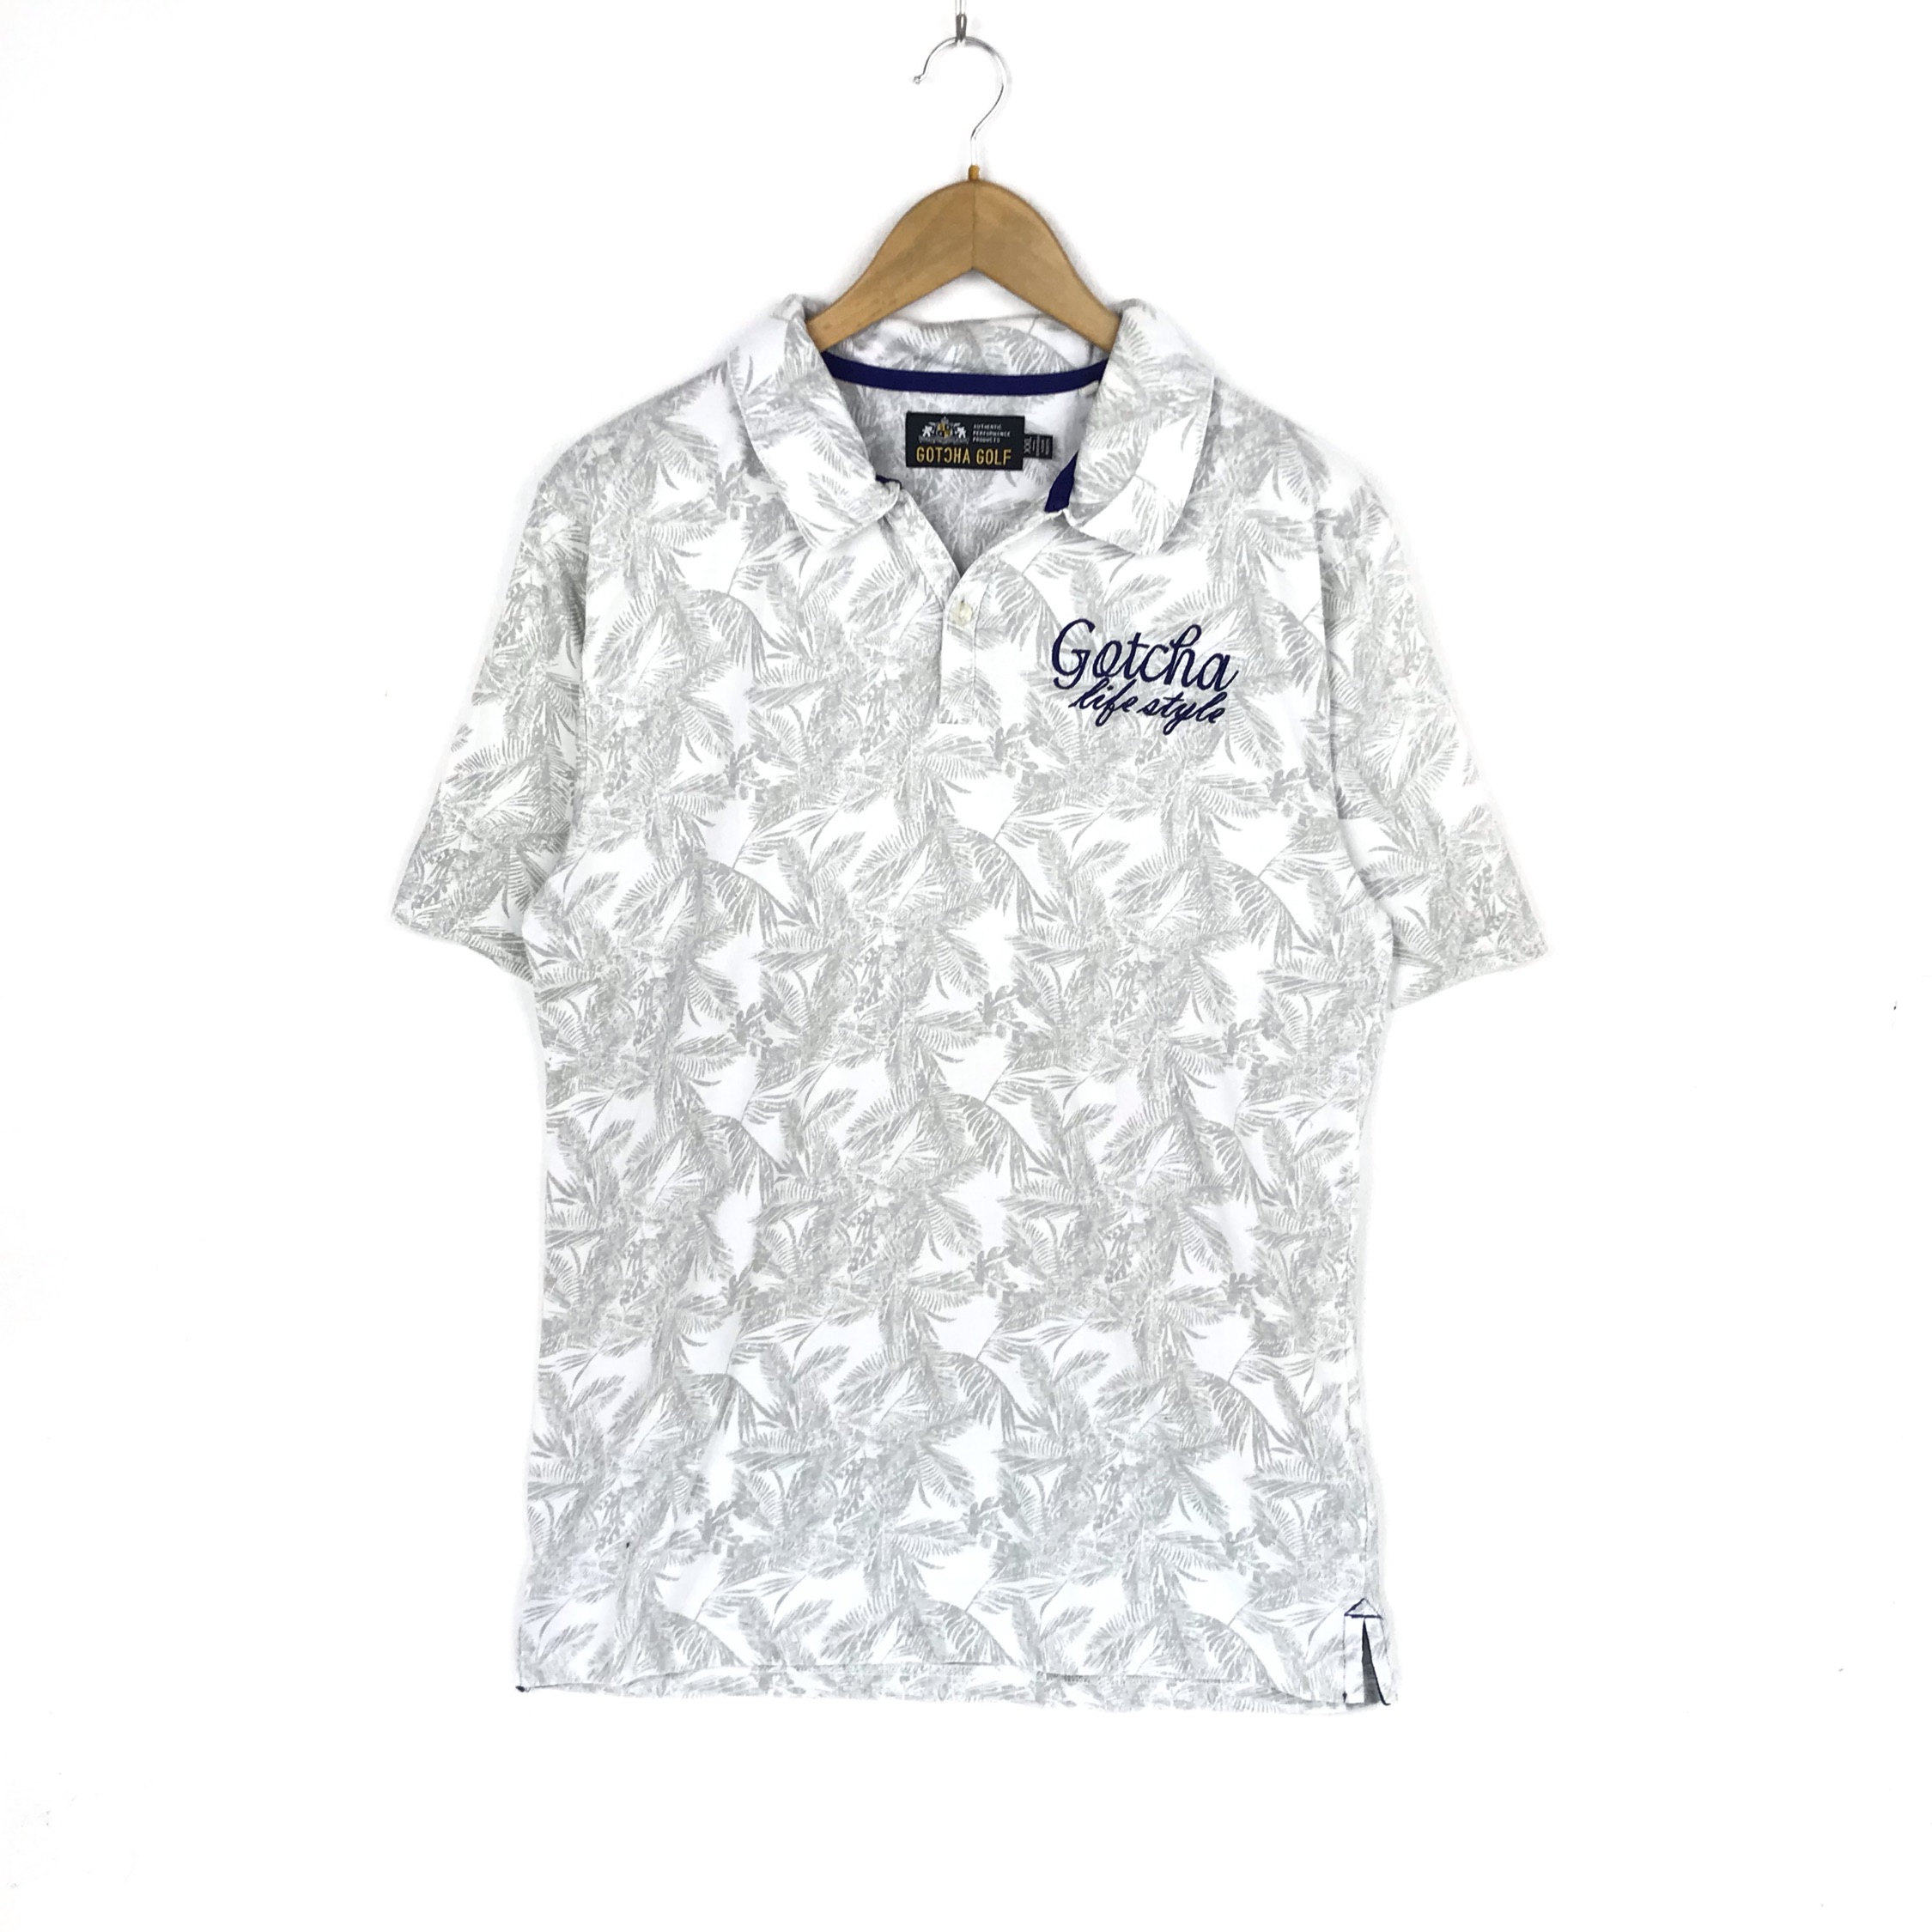 Vintage Hawaiian Shirt Gotcha Golf Polos Shirt